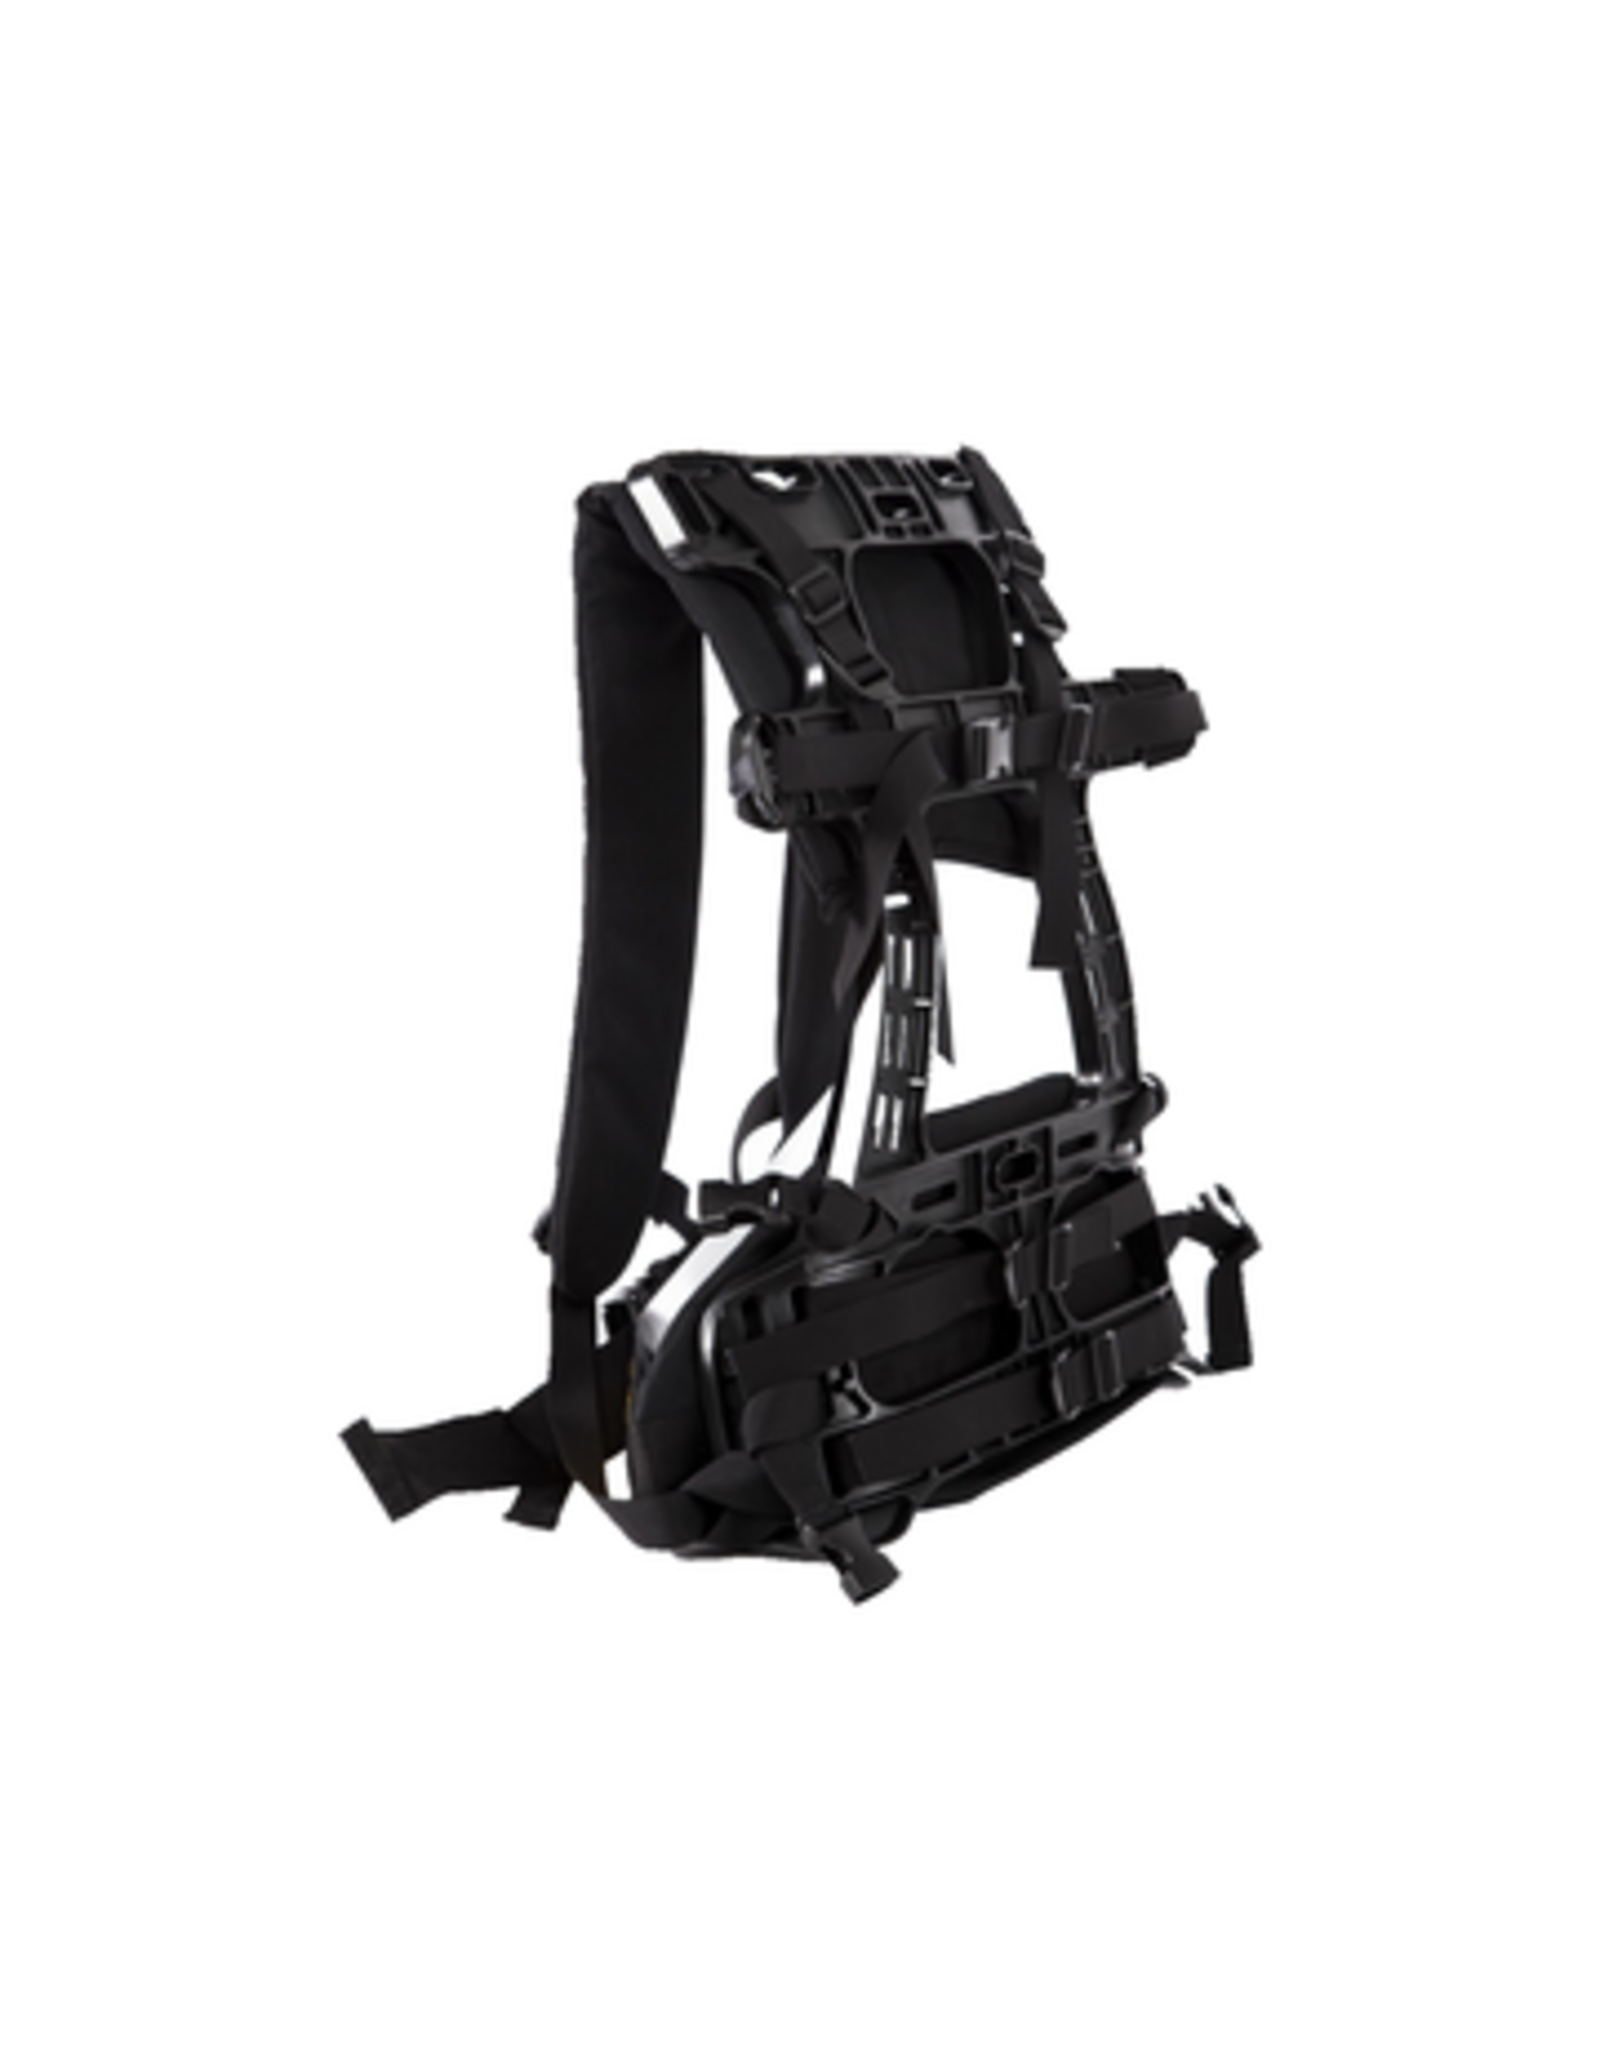 Portable Winch PW MOLDED PACK FRAME FOR TRANSPORT CASE PCA-0102